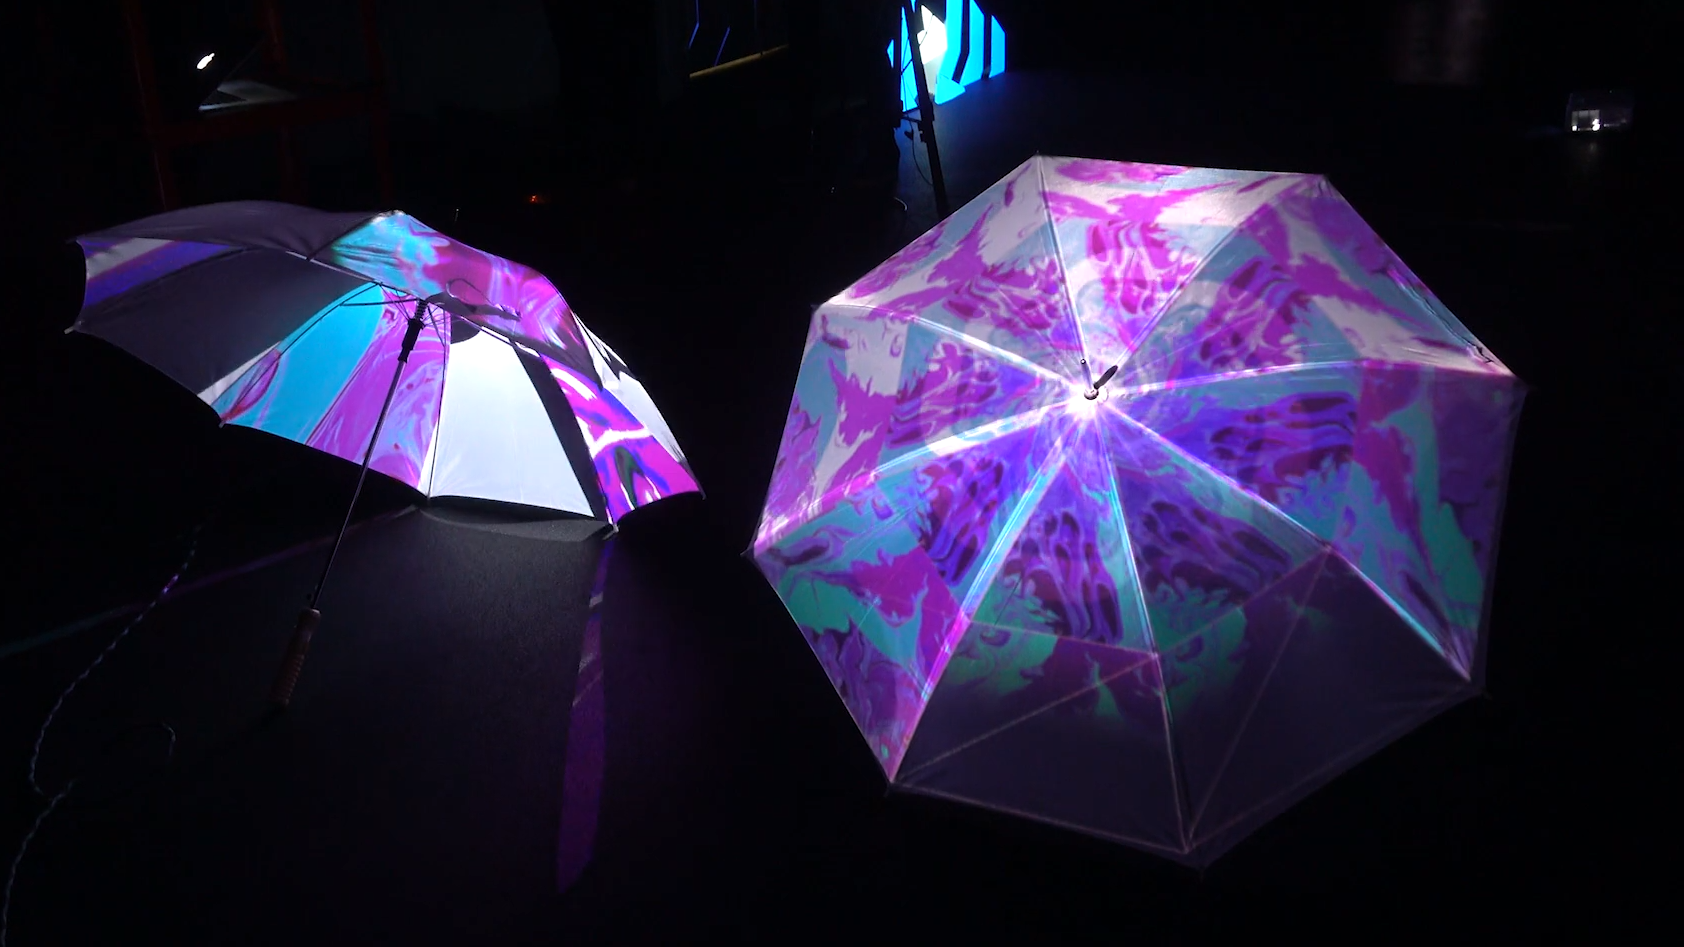 UmbrellaProjections